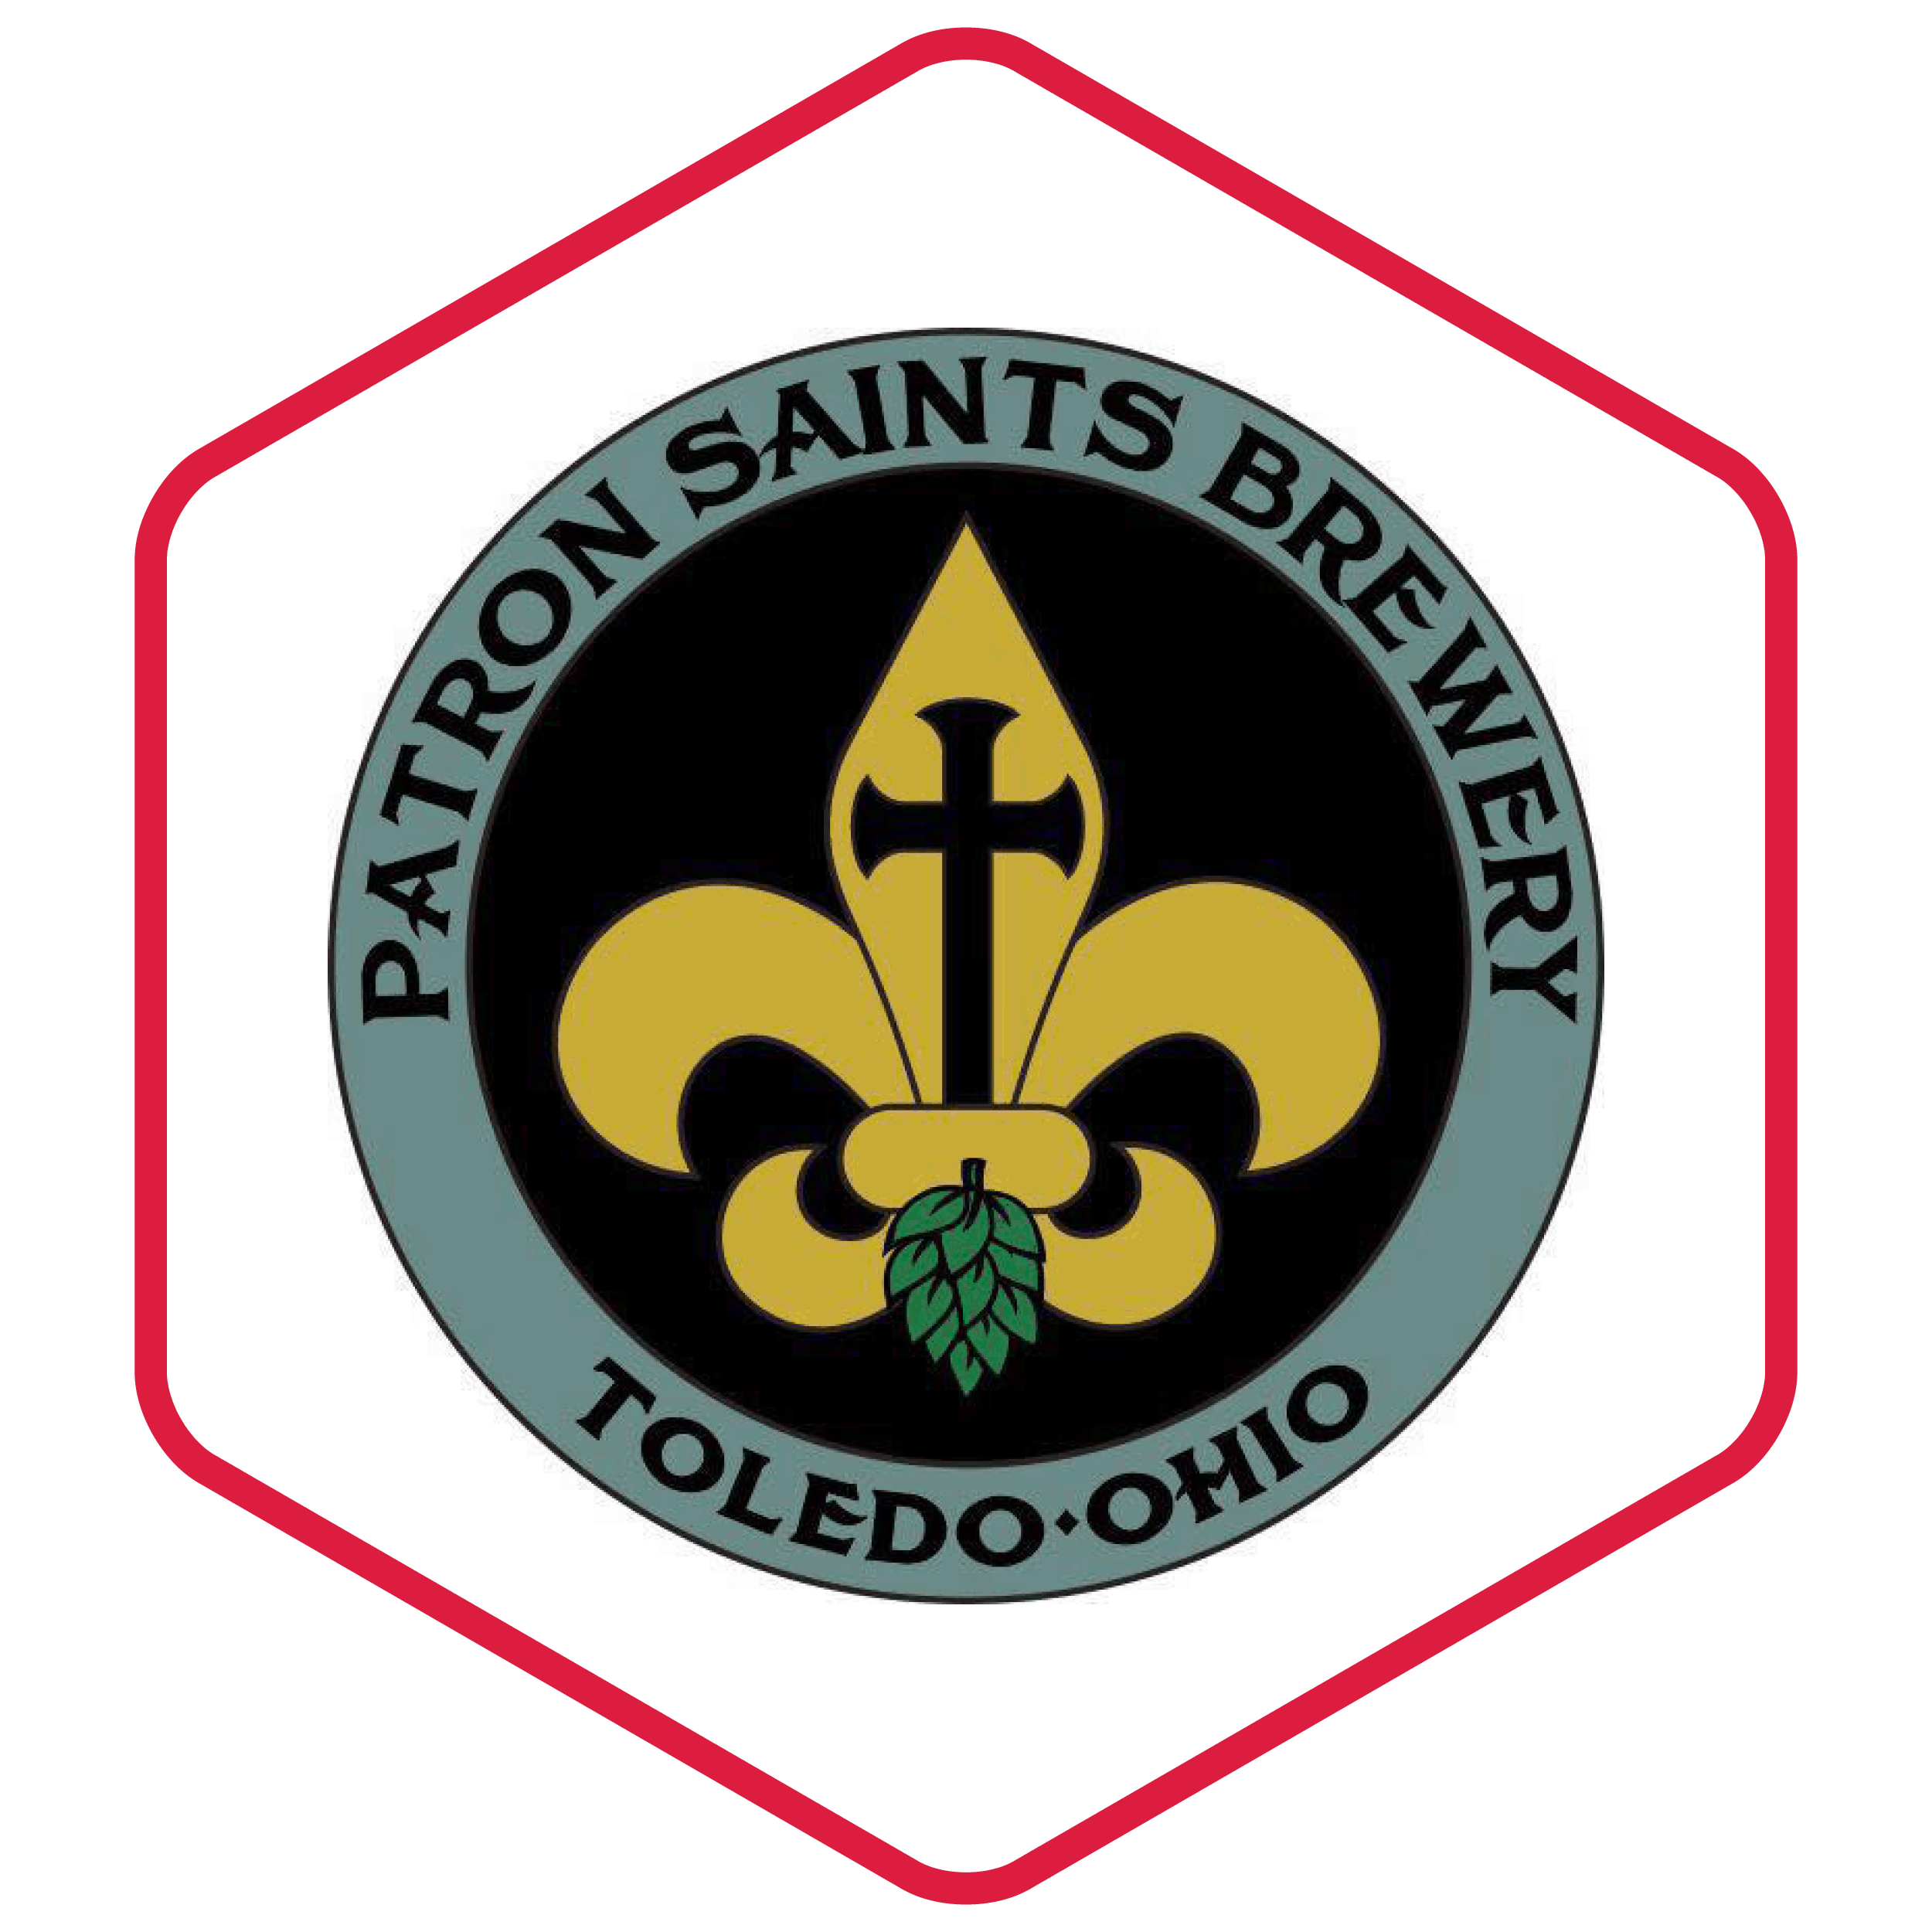 image of Patron Saint's logo with in a hexagon with a red border